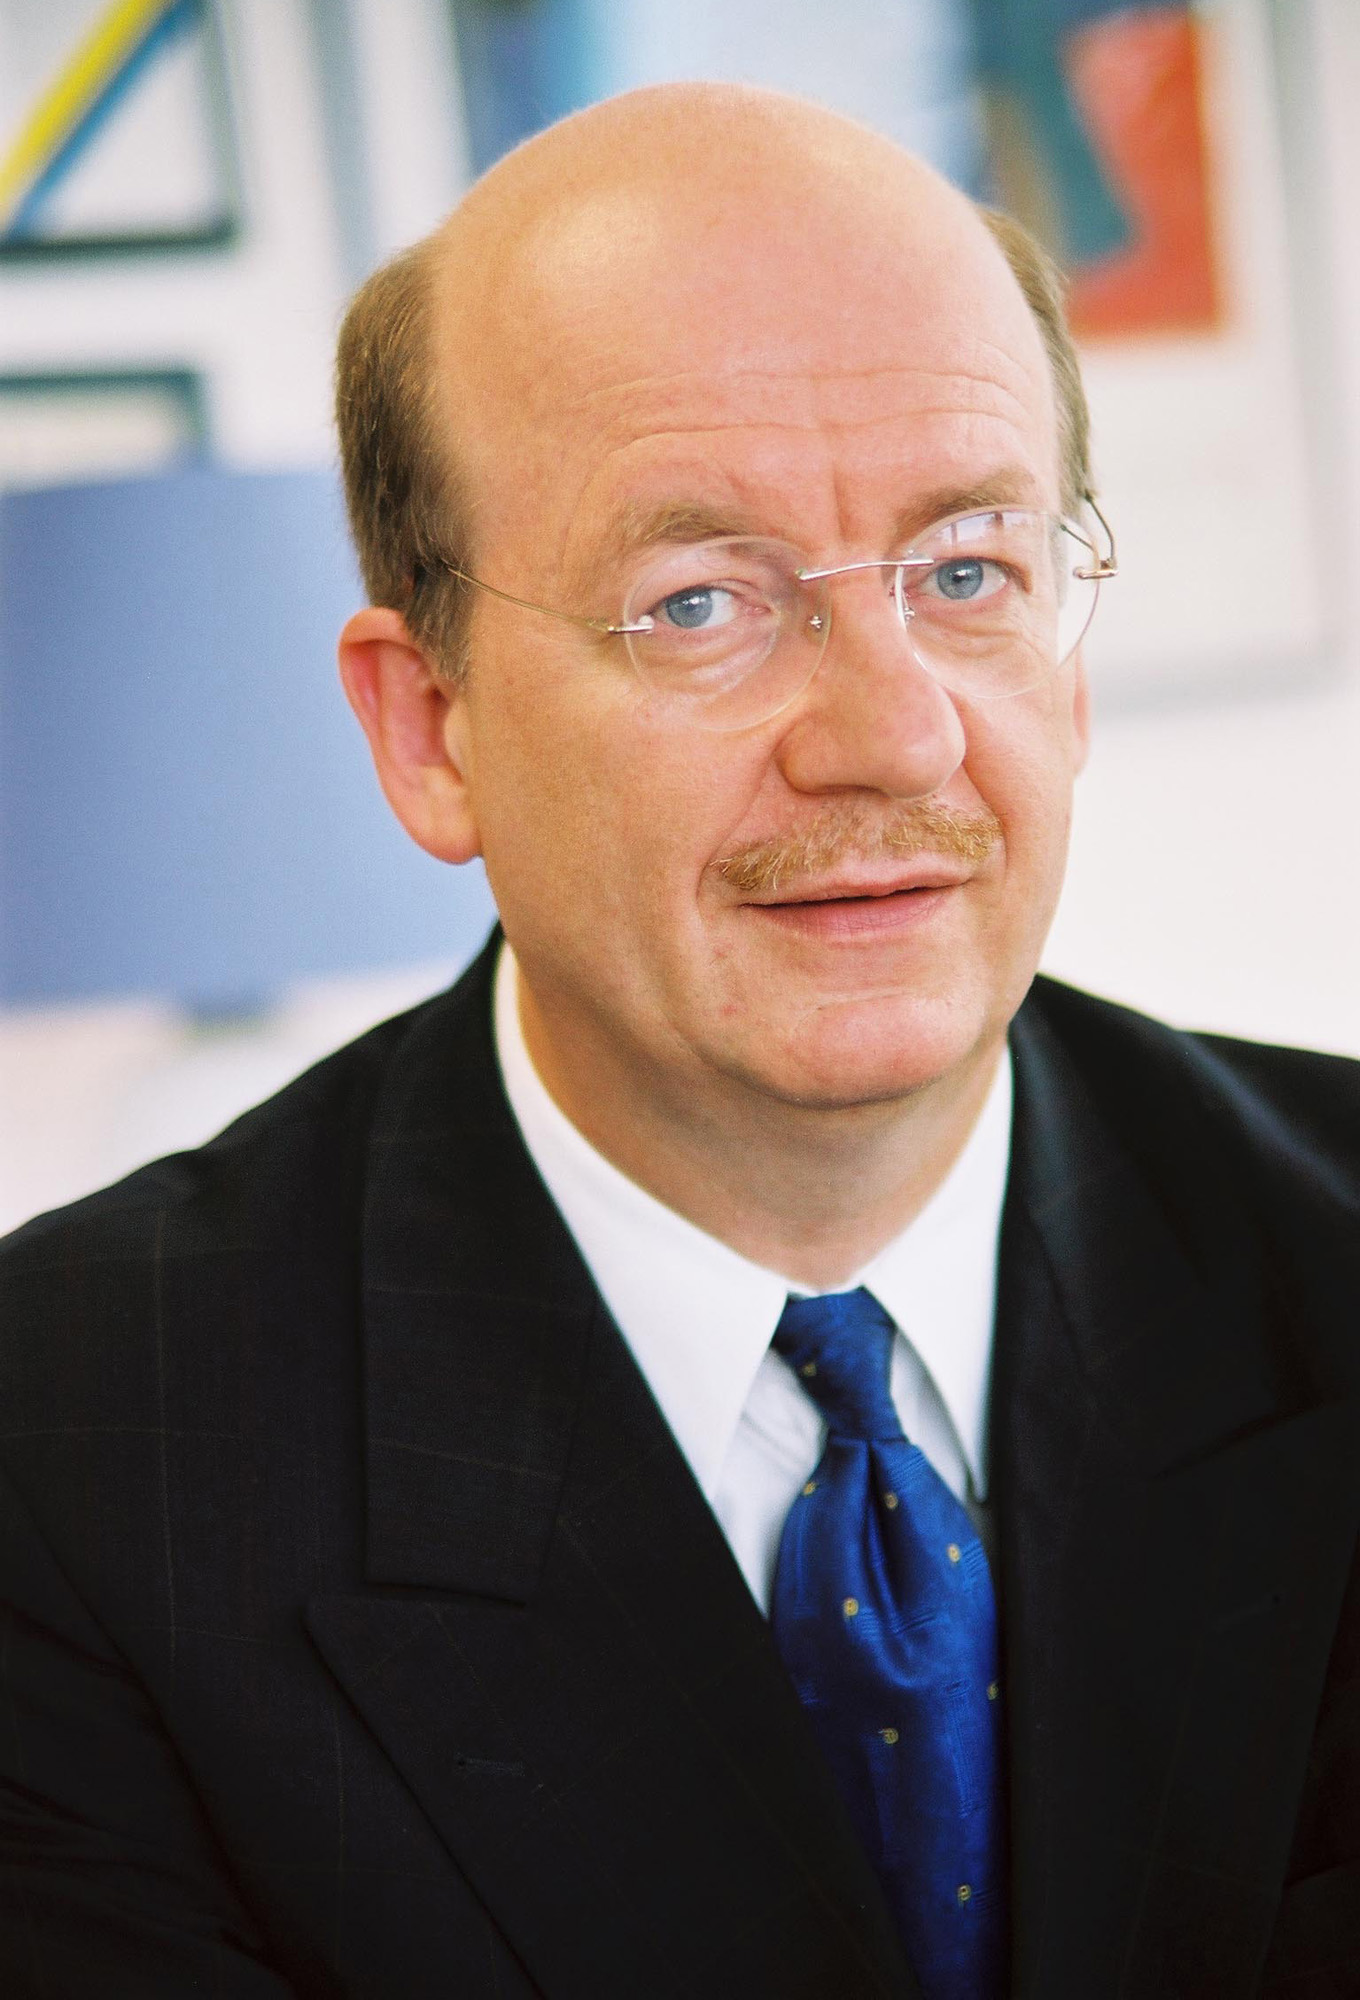 Prof. Dr. rer. nat. Wolfgang Wahlster